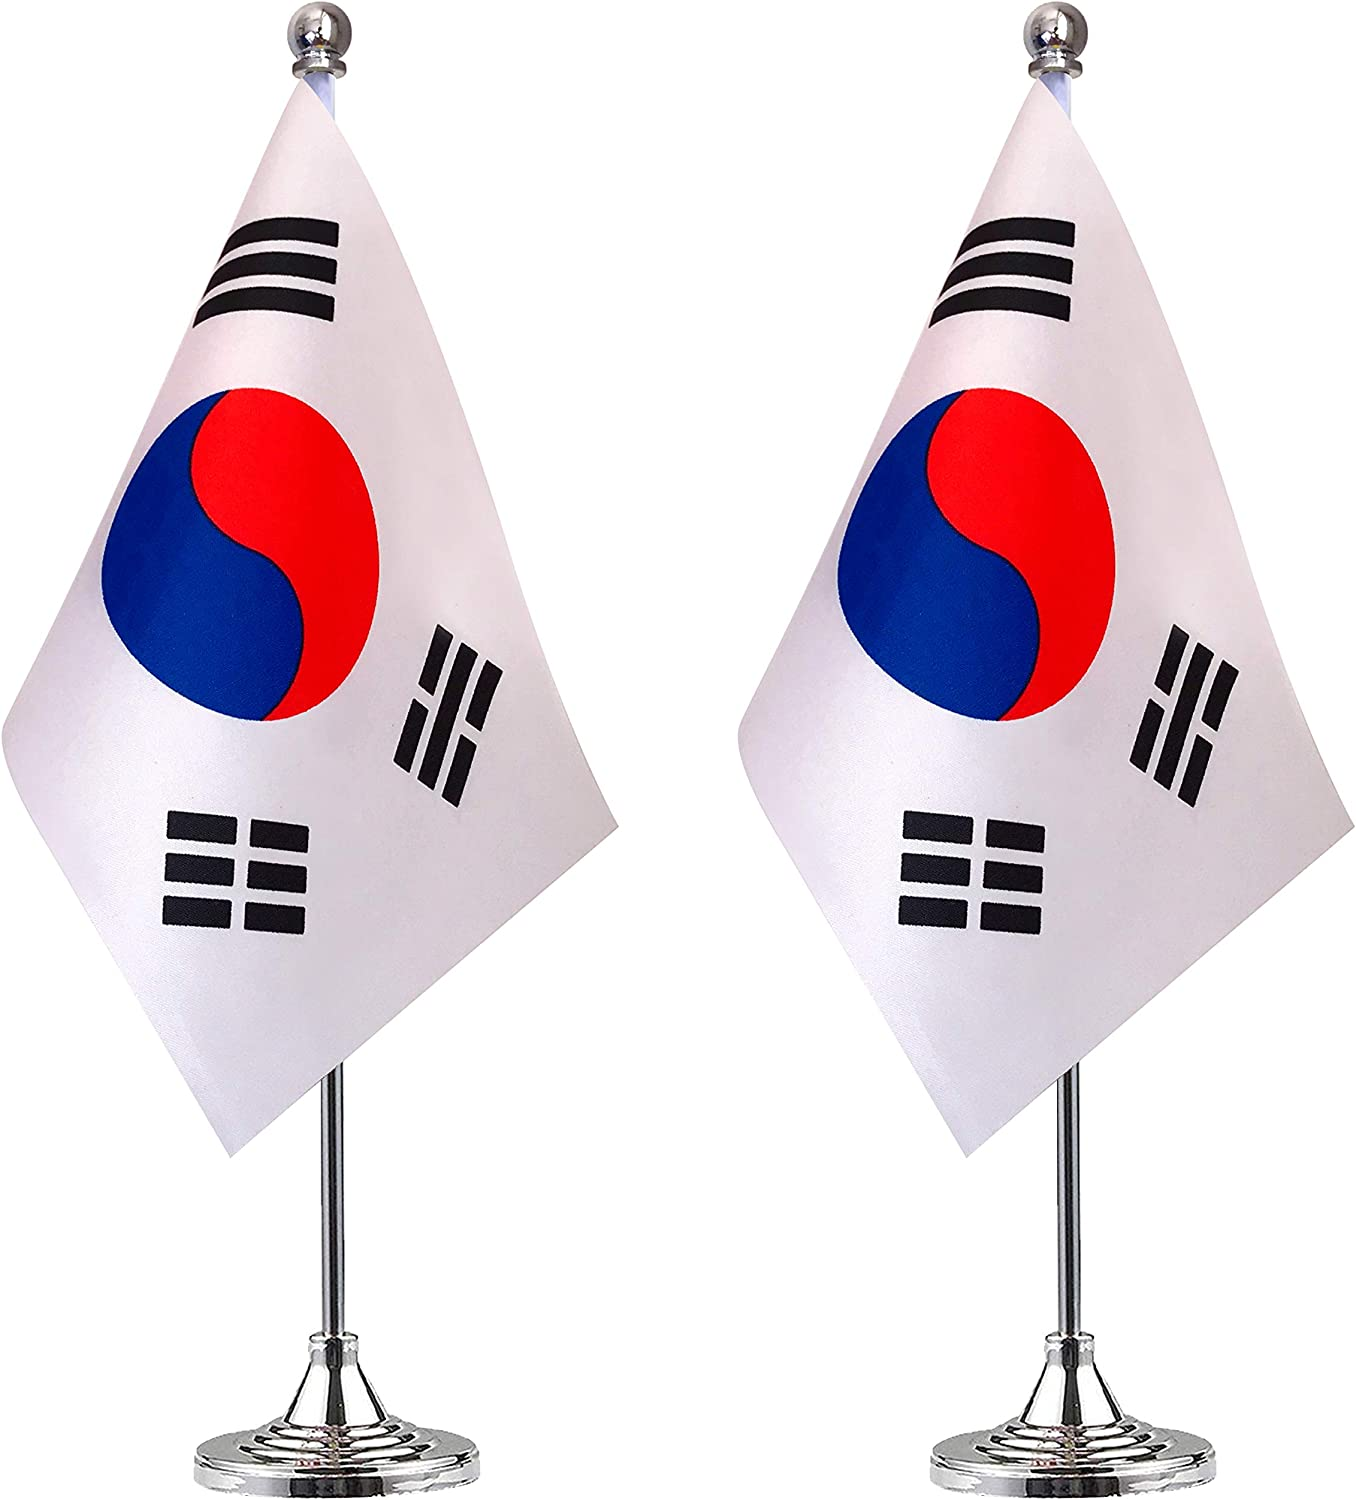 WEITBF South Korea Desk Flag Small Mini Korean Office Table Flag with Stand Base,Korean Themed Party Decorations Celebration Event,2 Pack